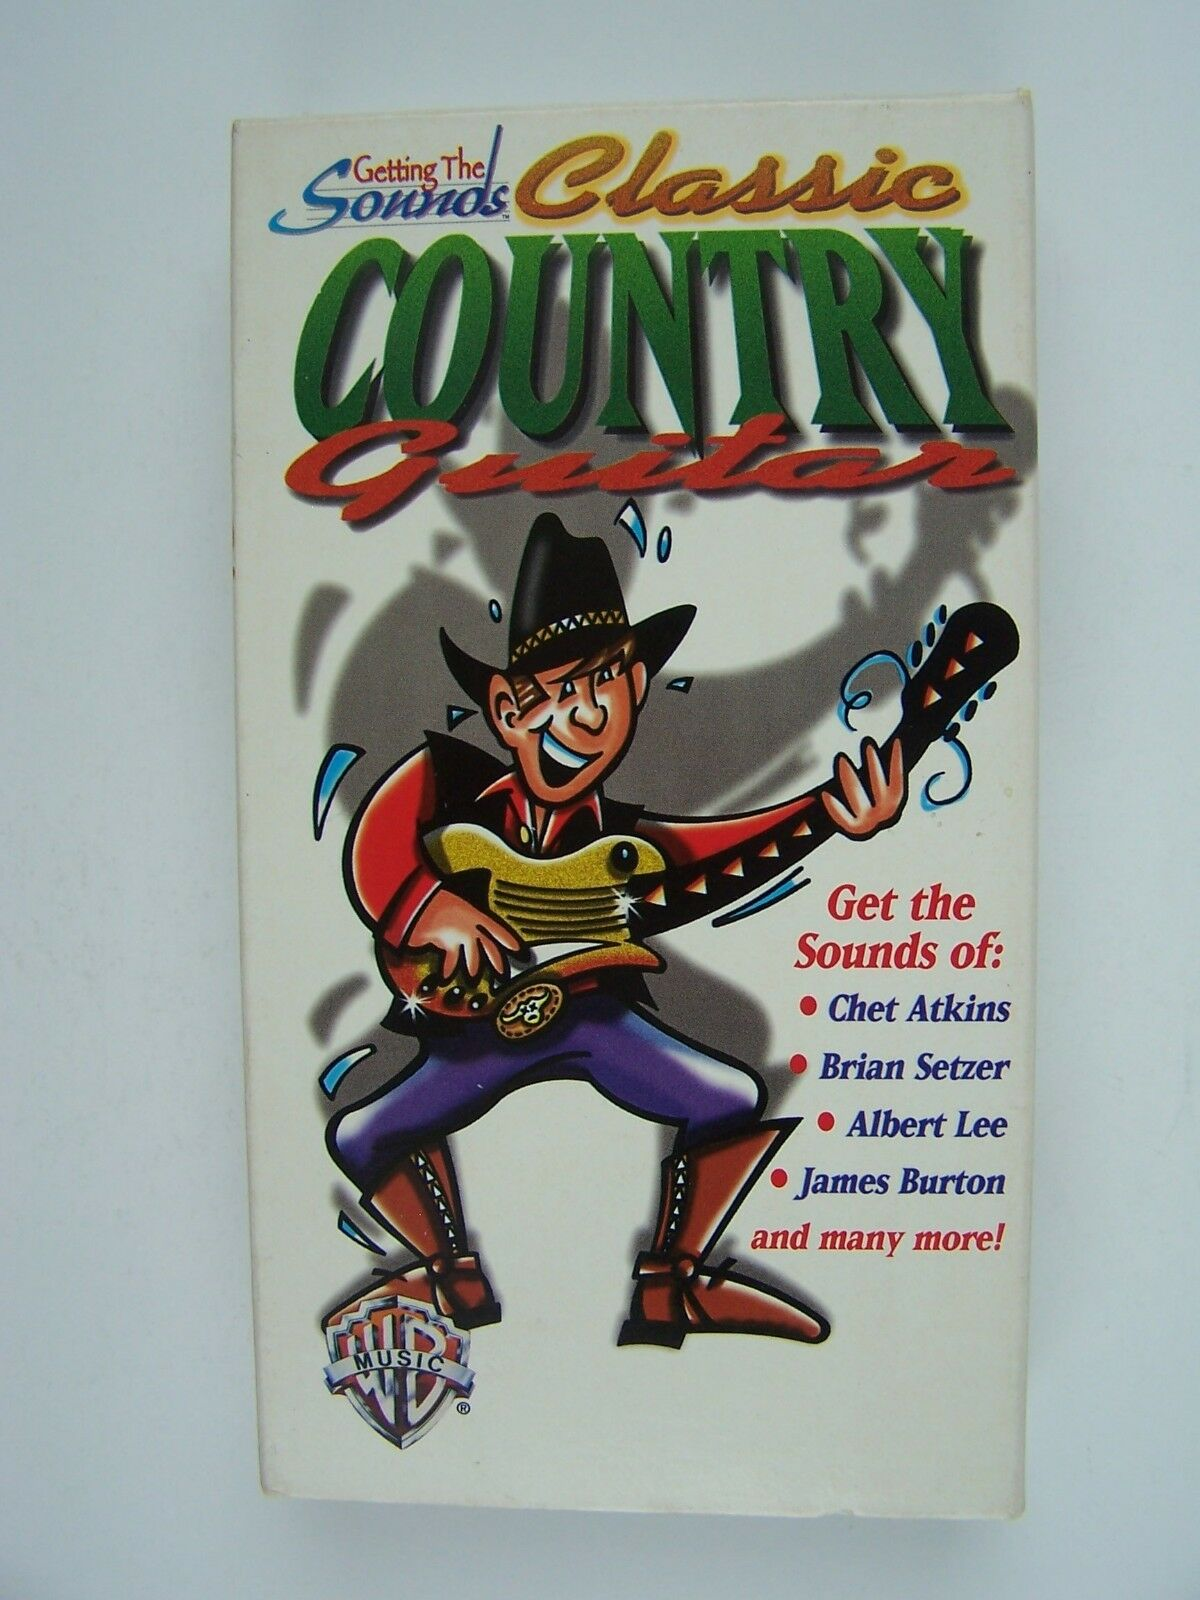 Getting The Sounds: Classic Country Guitar VHS